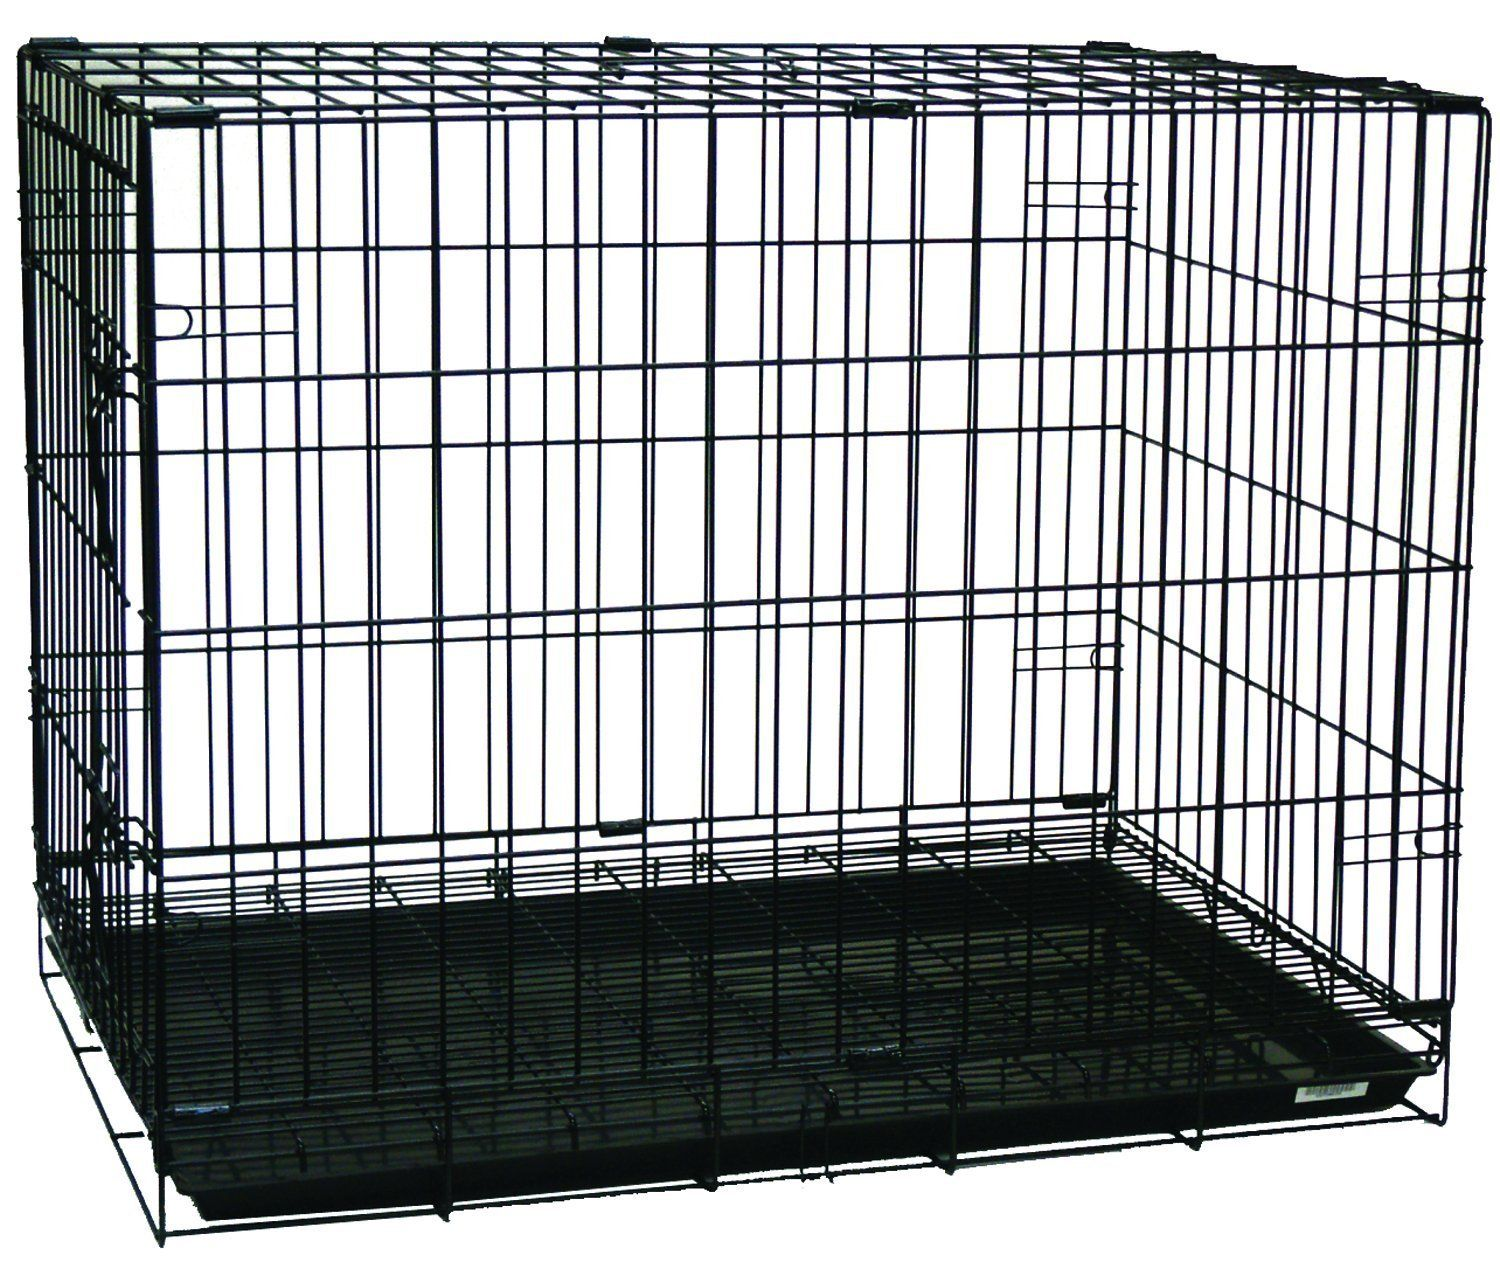 Yml Double Door Dog Kennel Cage With Plastic Tray No Bottom Wire 42 Inch Black Trust Me This Is Great C Dog Kennel Dog Boarding Near Me Large Dog Crate